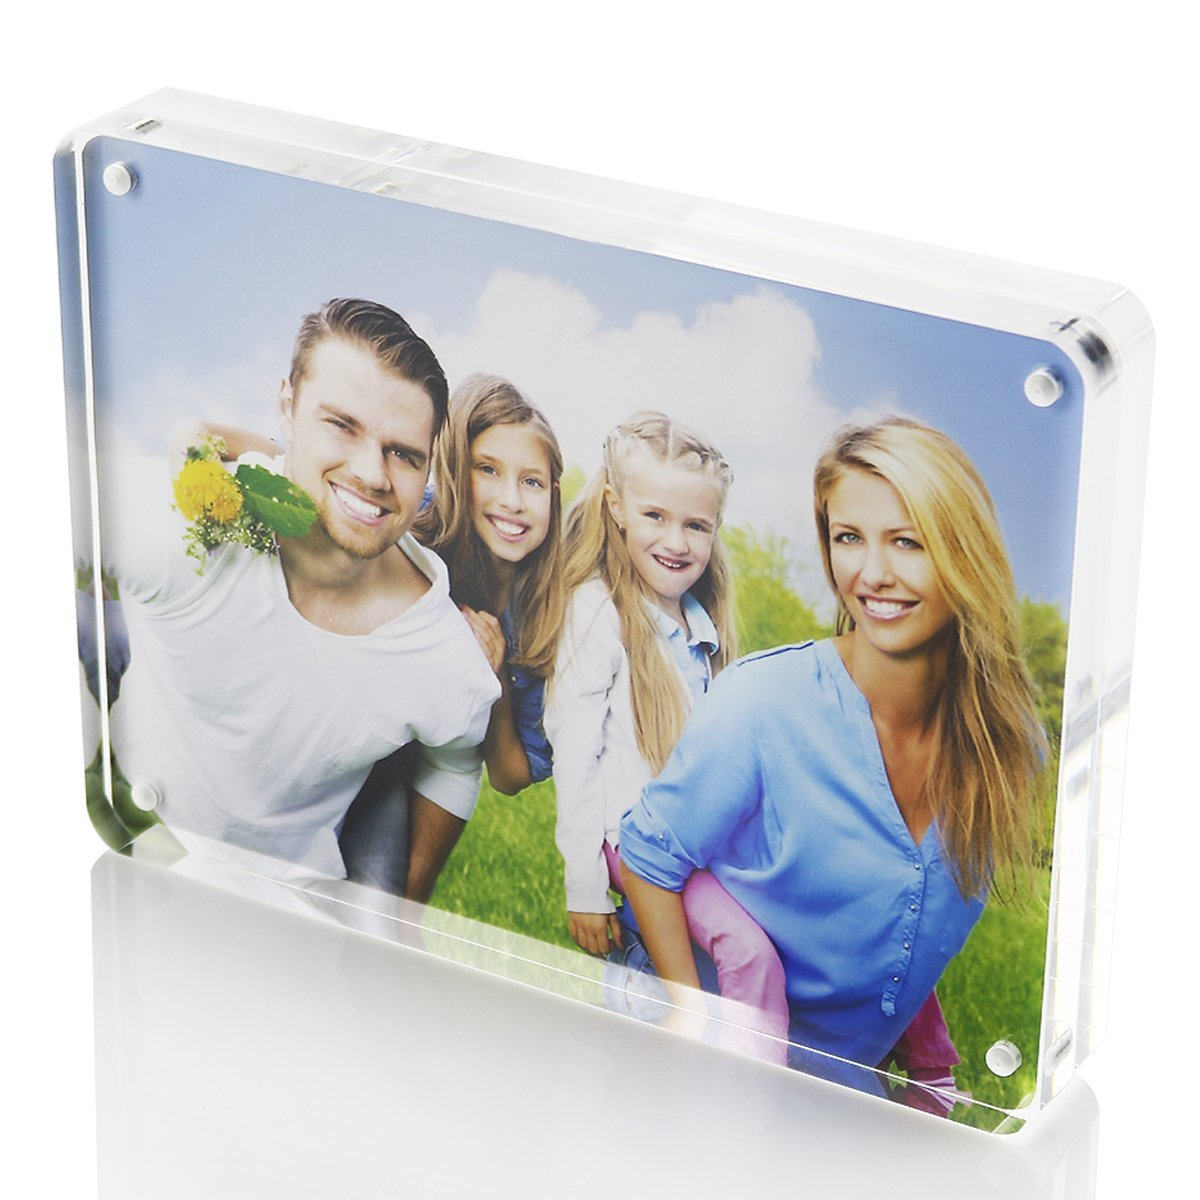 4x6 Picture Frame,Clear Photo Frames Tabletop Display,Magnetic Picture Frames Standing on the Desk-SupperAcrylic